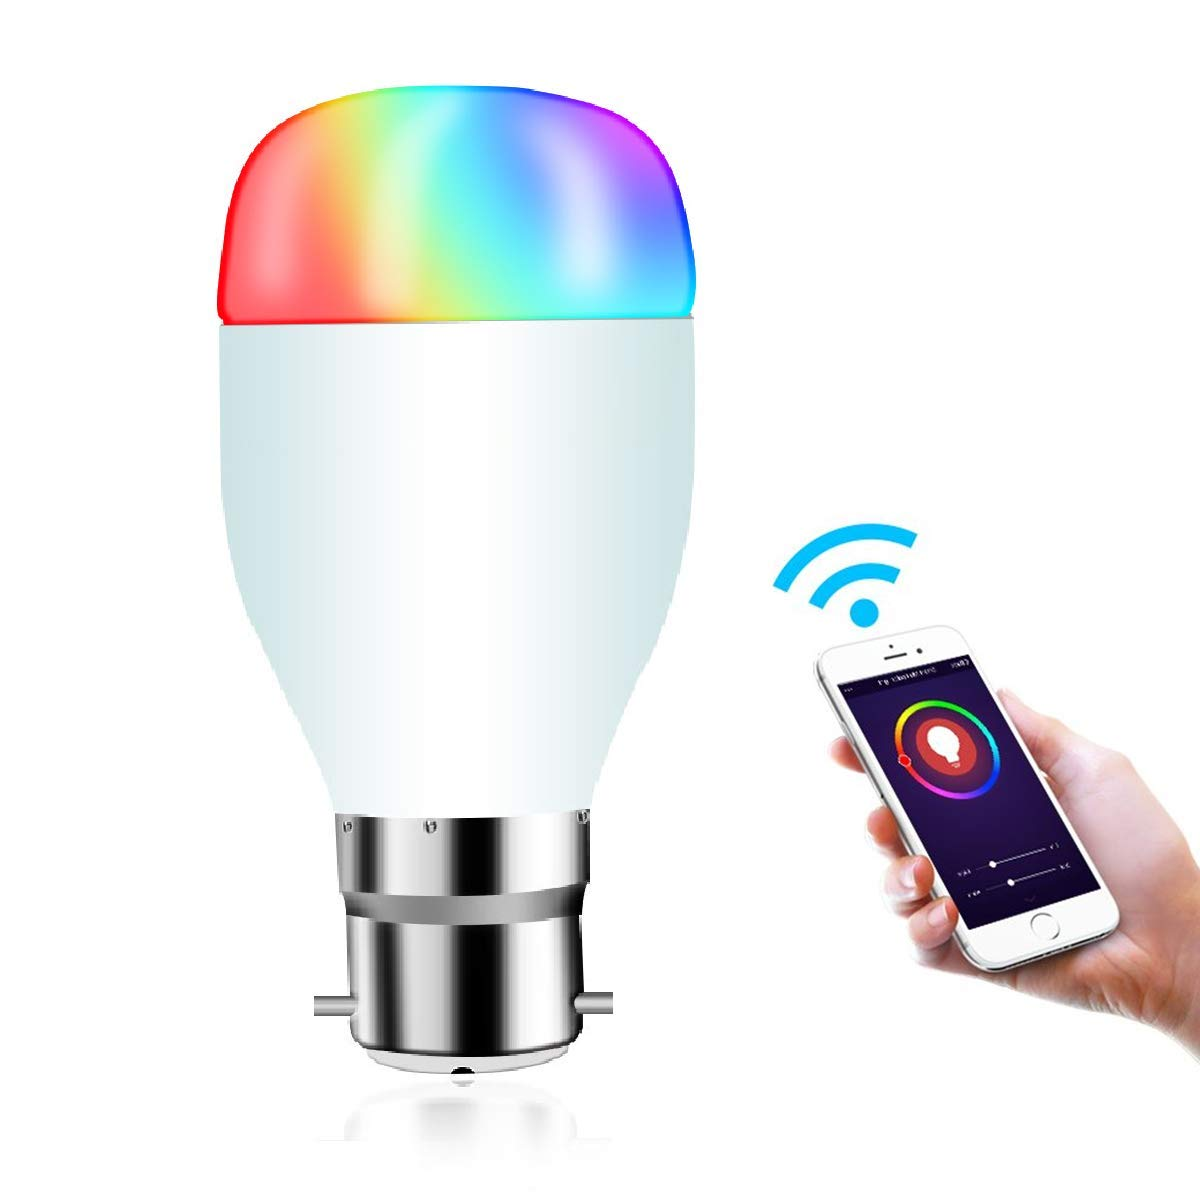 WIFI Smart Bulb, Hedynshine B22 Globe Bulbs 7W Led Light Bulb Compatible with Alexa Google Home Assistant IFTTT, Smart Control by iOS&Android,No Hub Required Dimmable RGB Smart Light Bulbs